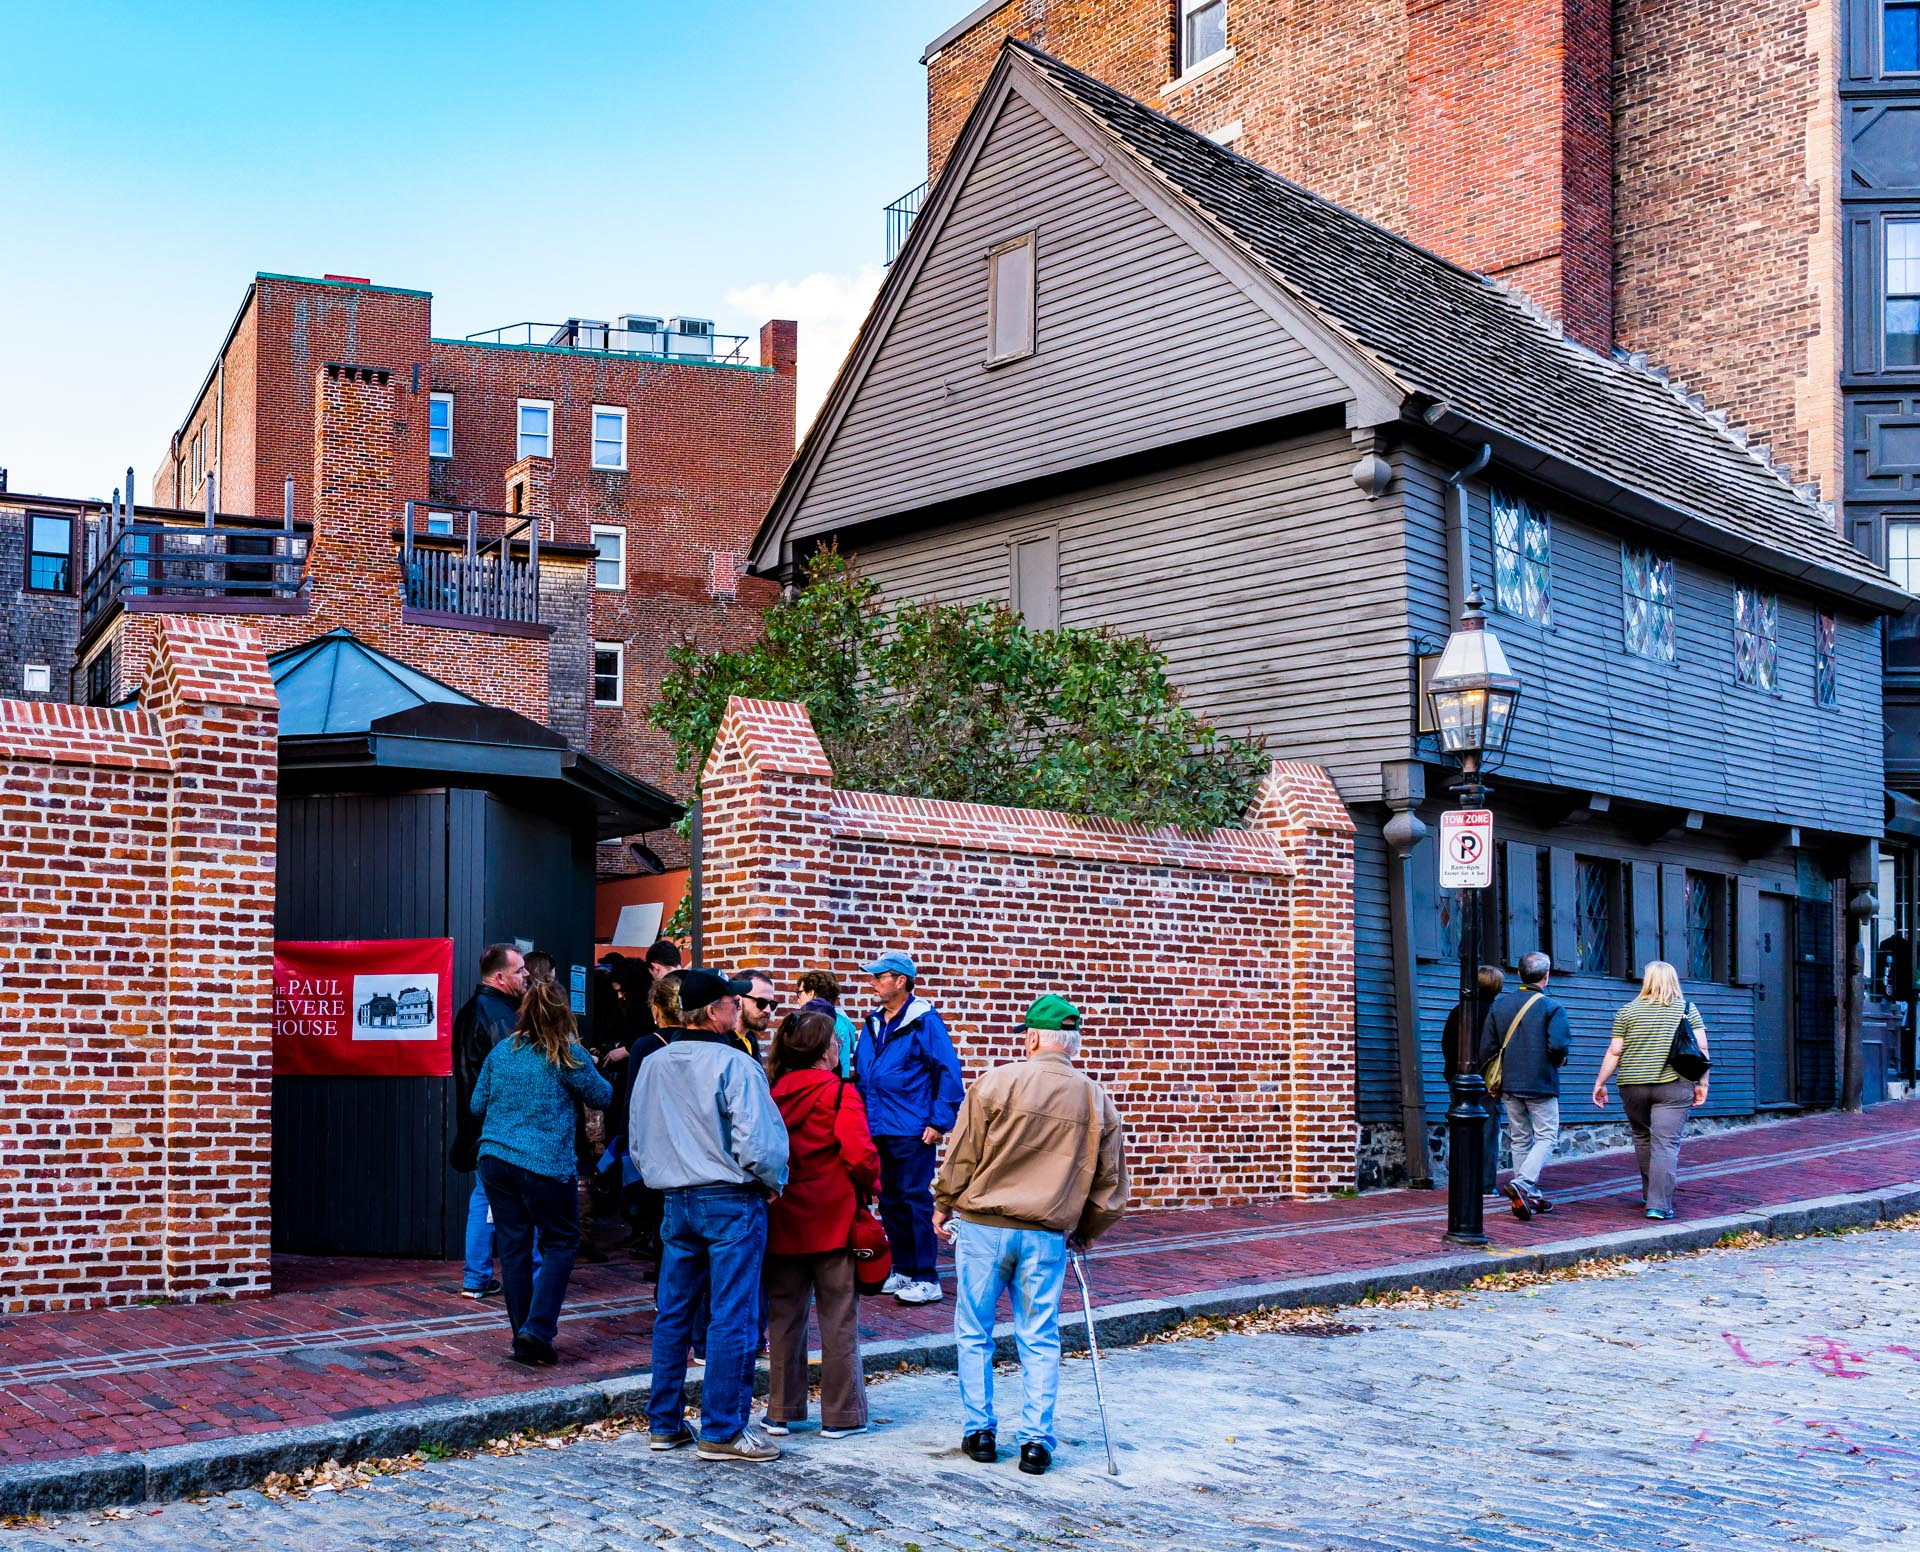 North Square entry to Paul Revere House